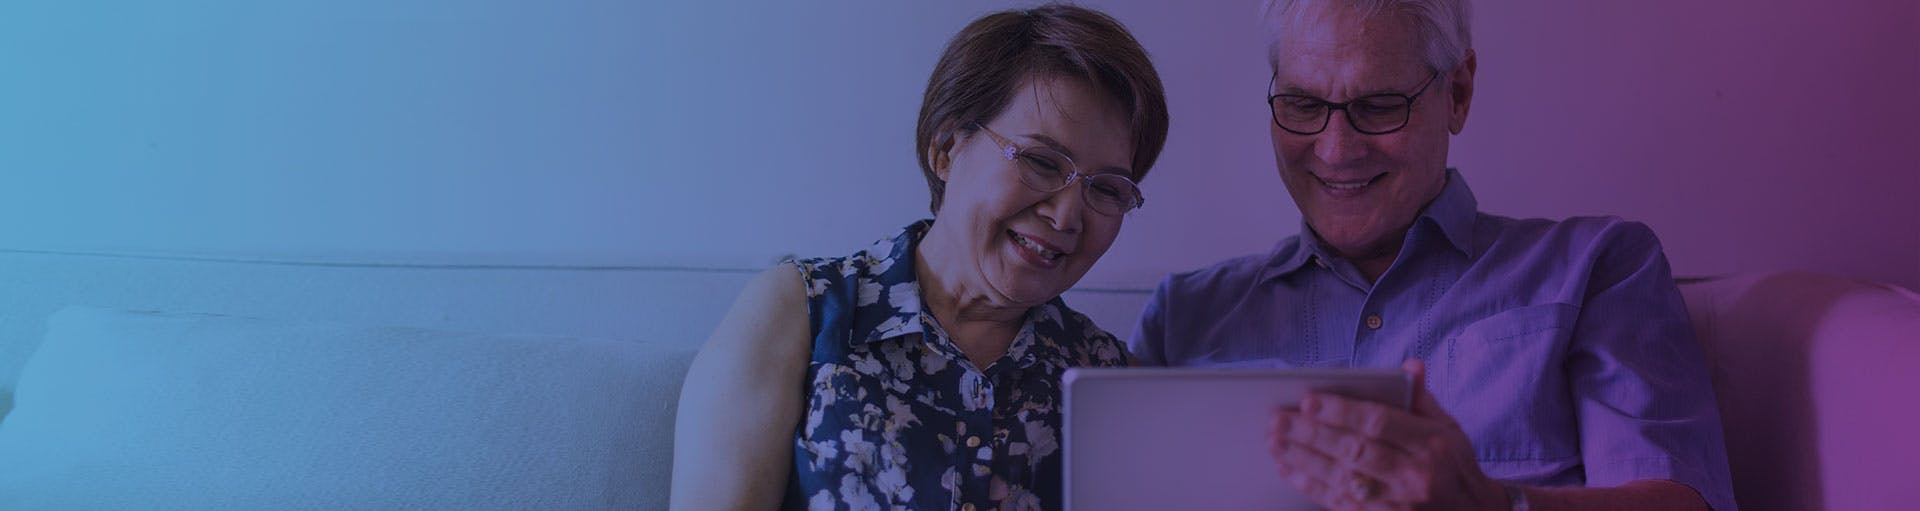 pink and purple gradient with a senior couple looking at a computer together